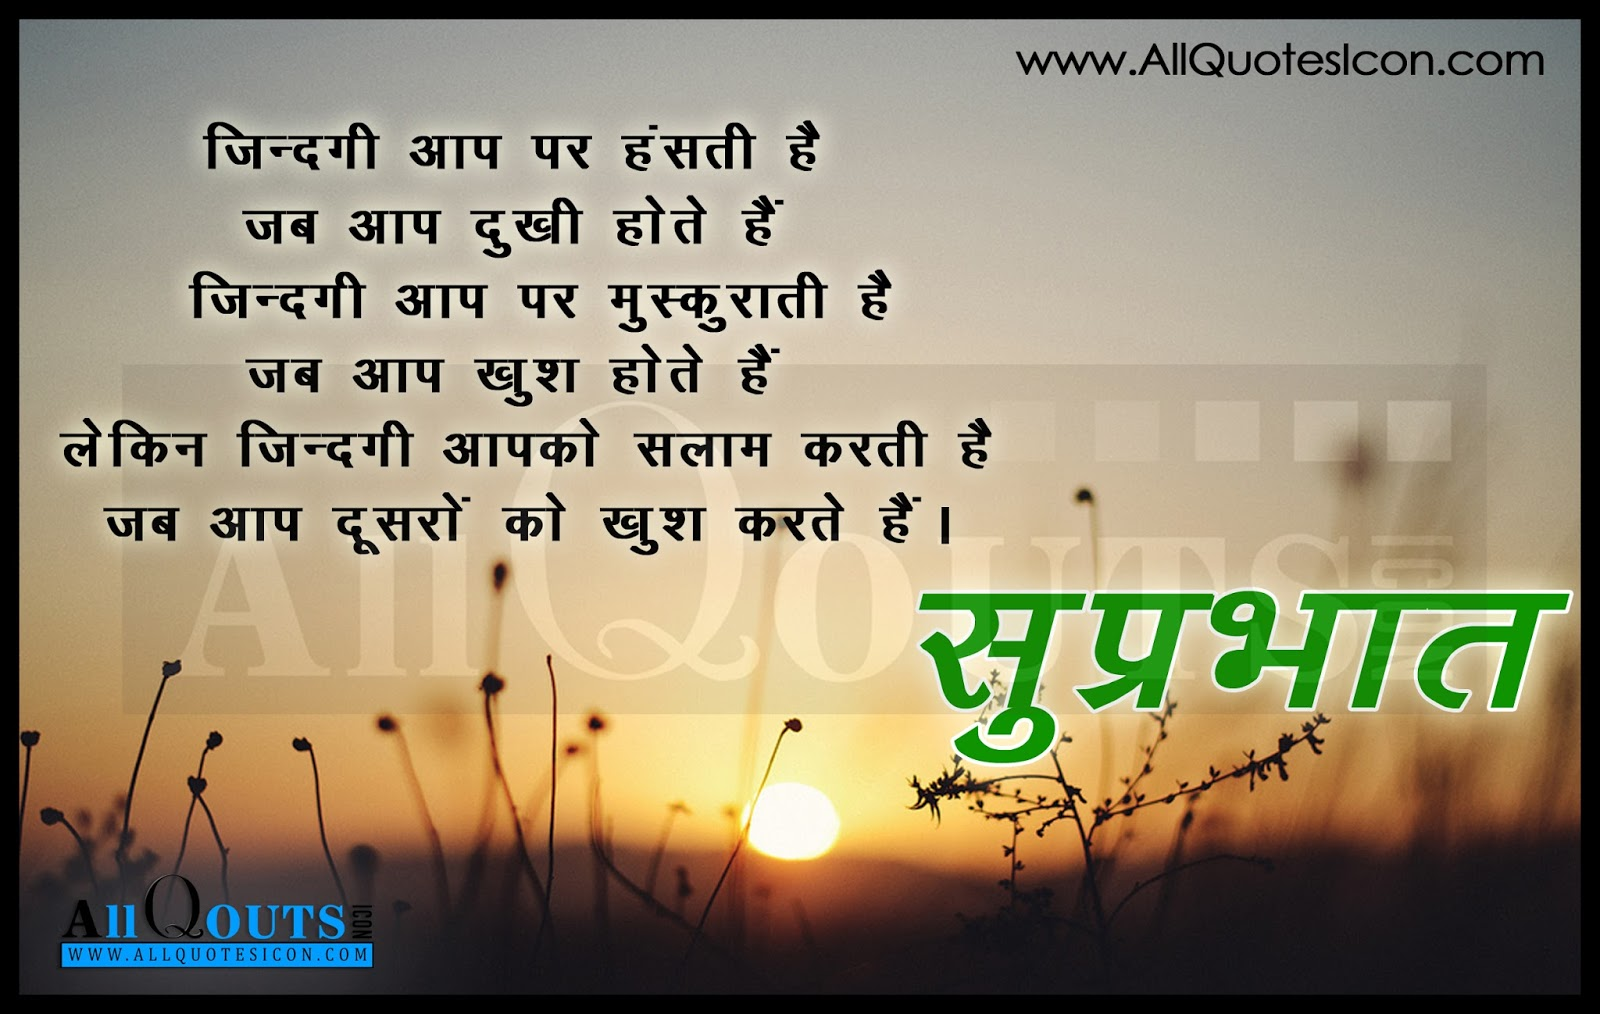 Inspirational Morning Quotes Good Morning Inspiration Quotes In Hindi Pictures Best Hindi Good